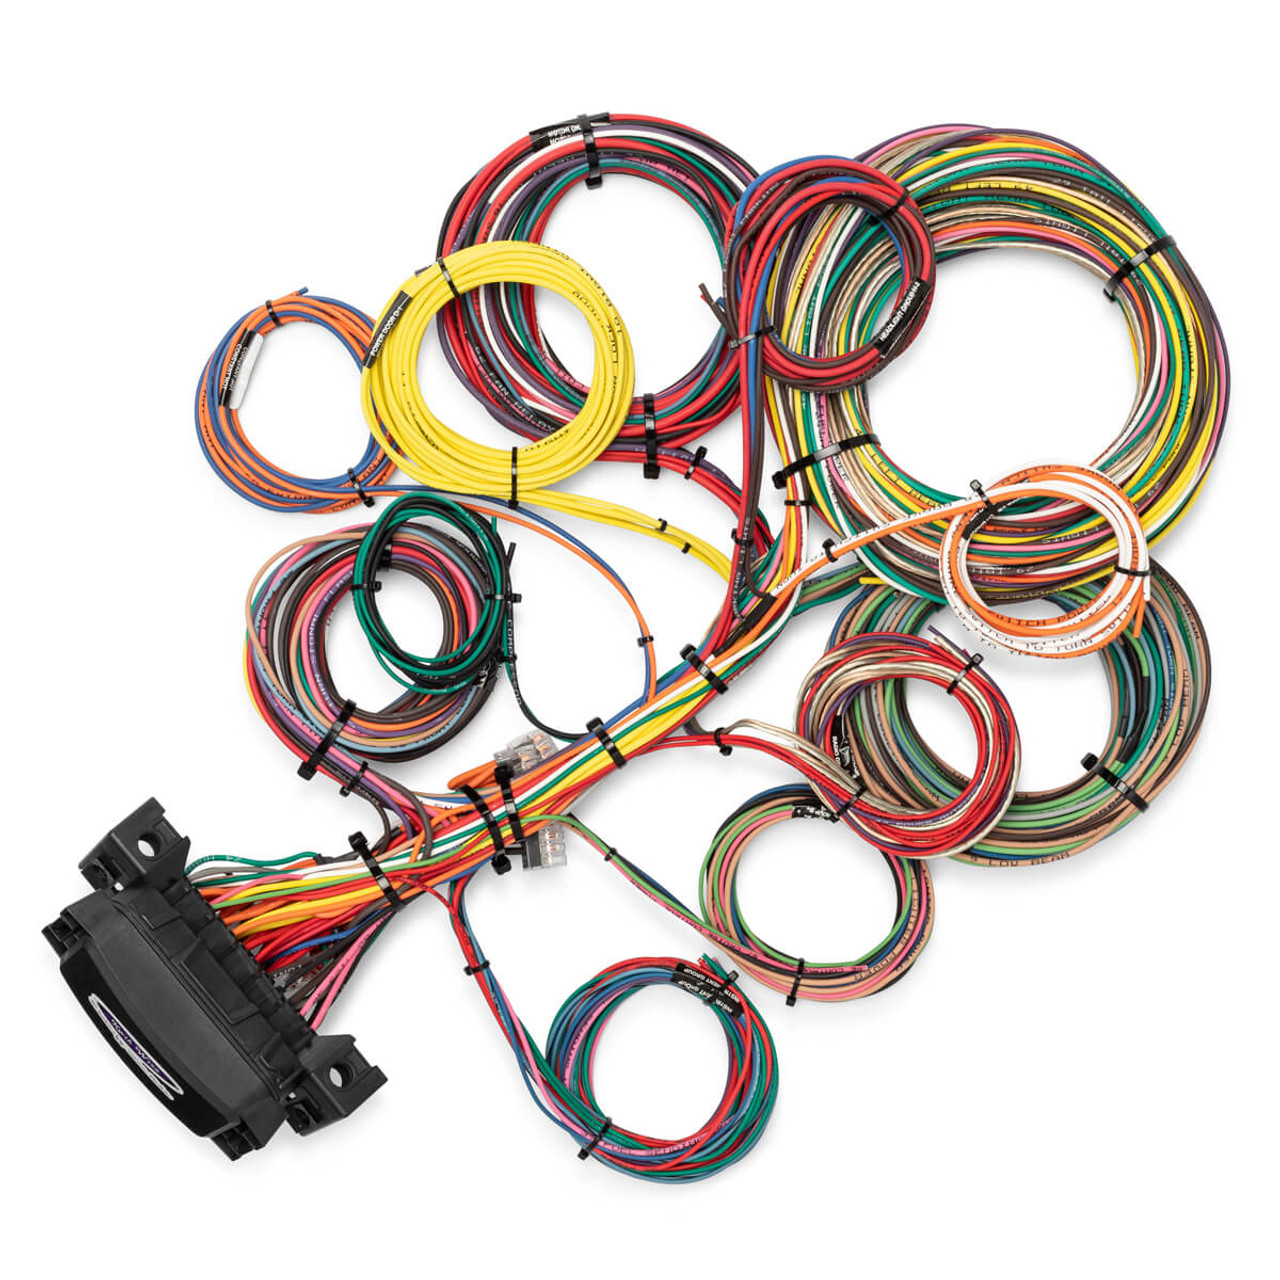 26 circuit waterproof wire harness Atwood Water Heater Wire Harness